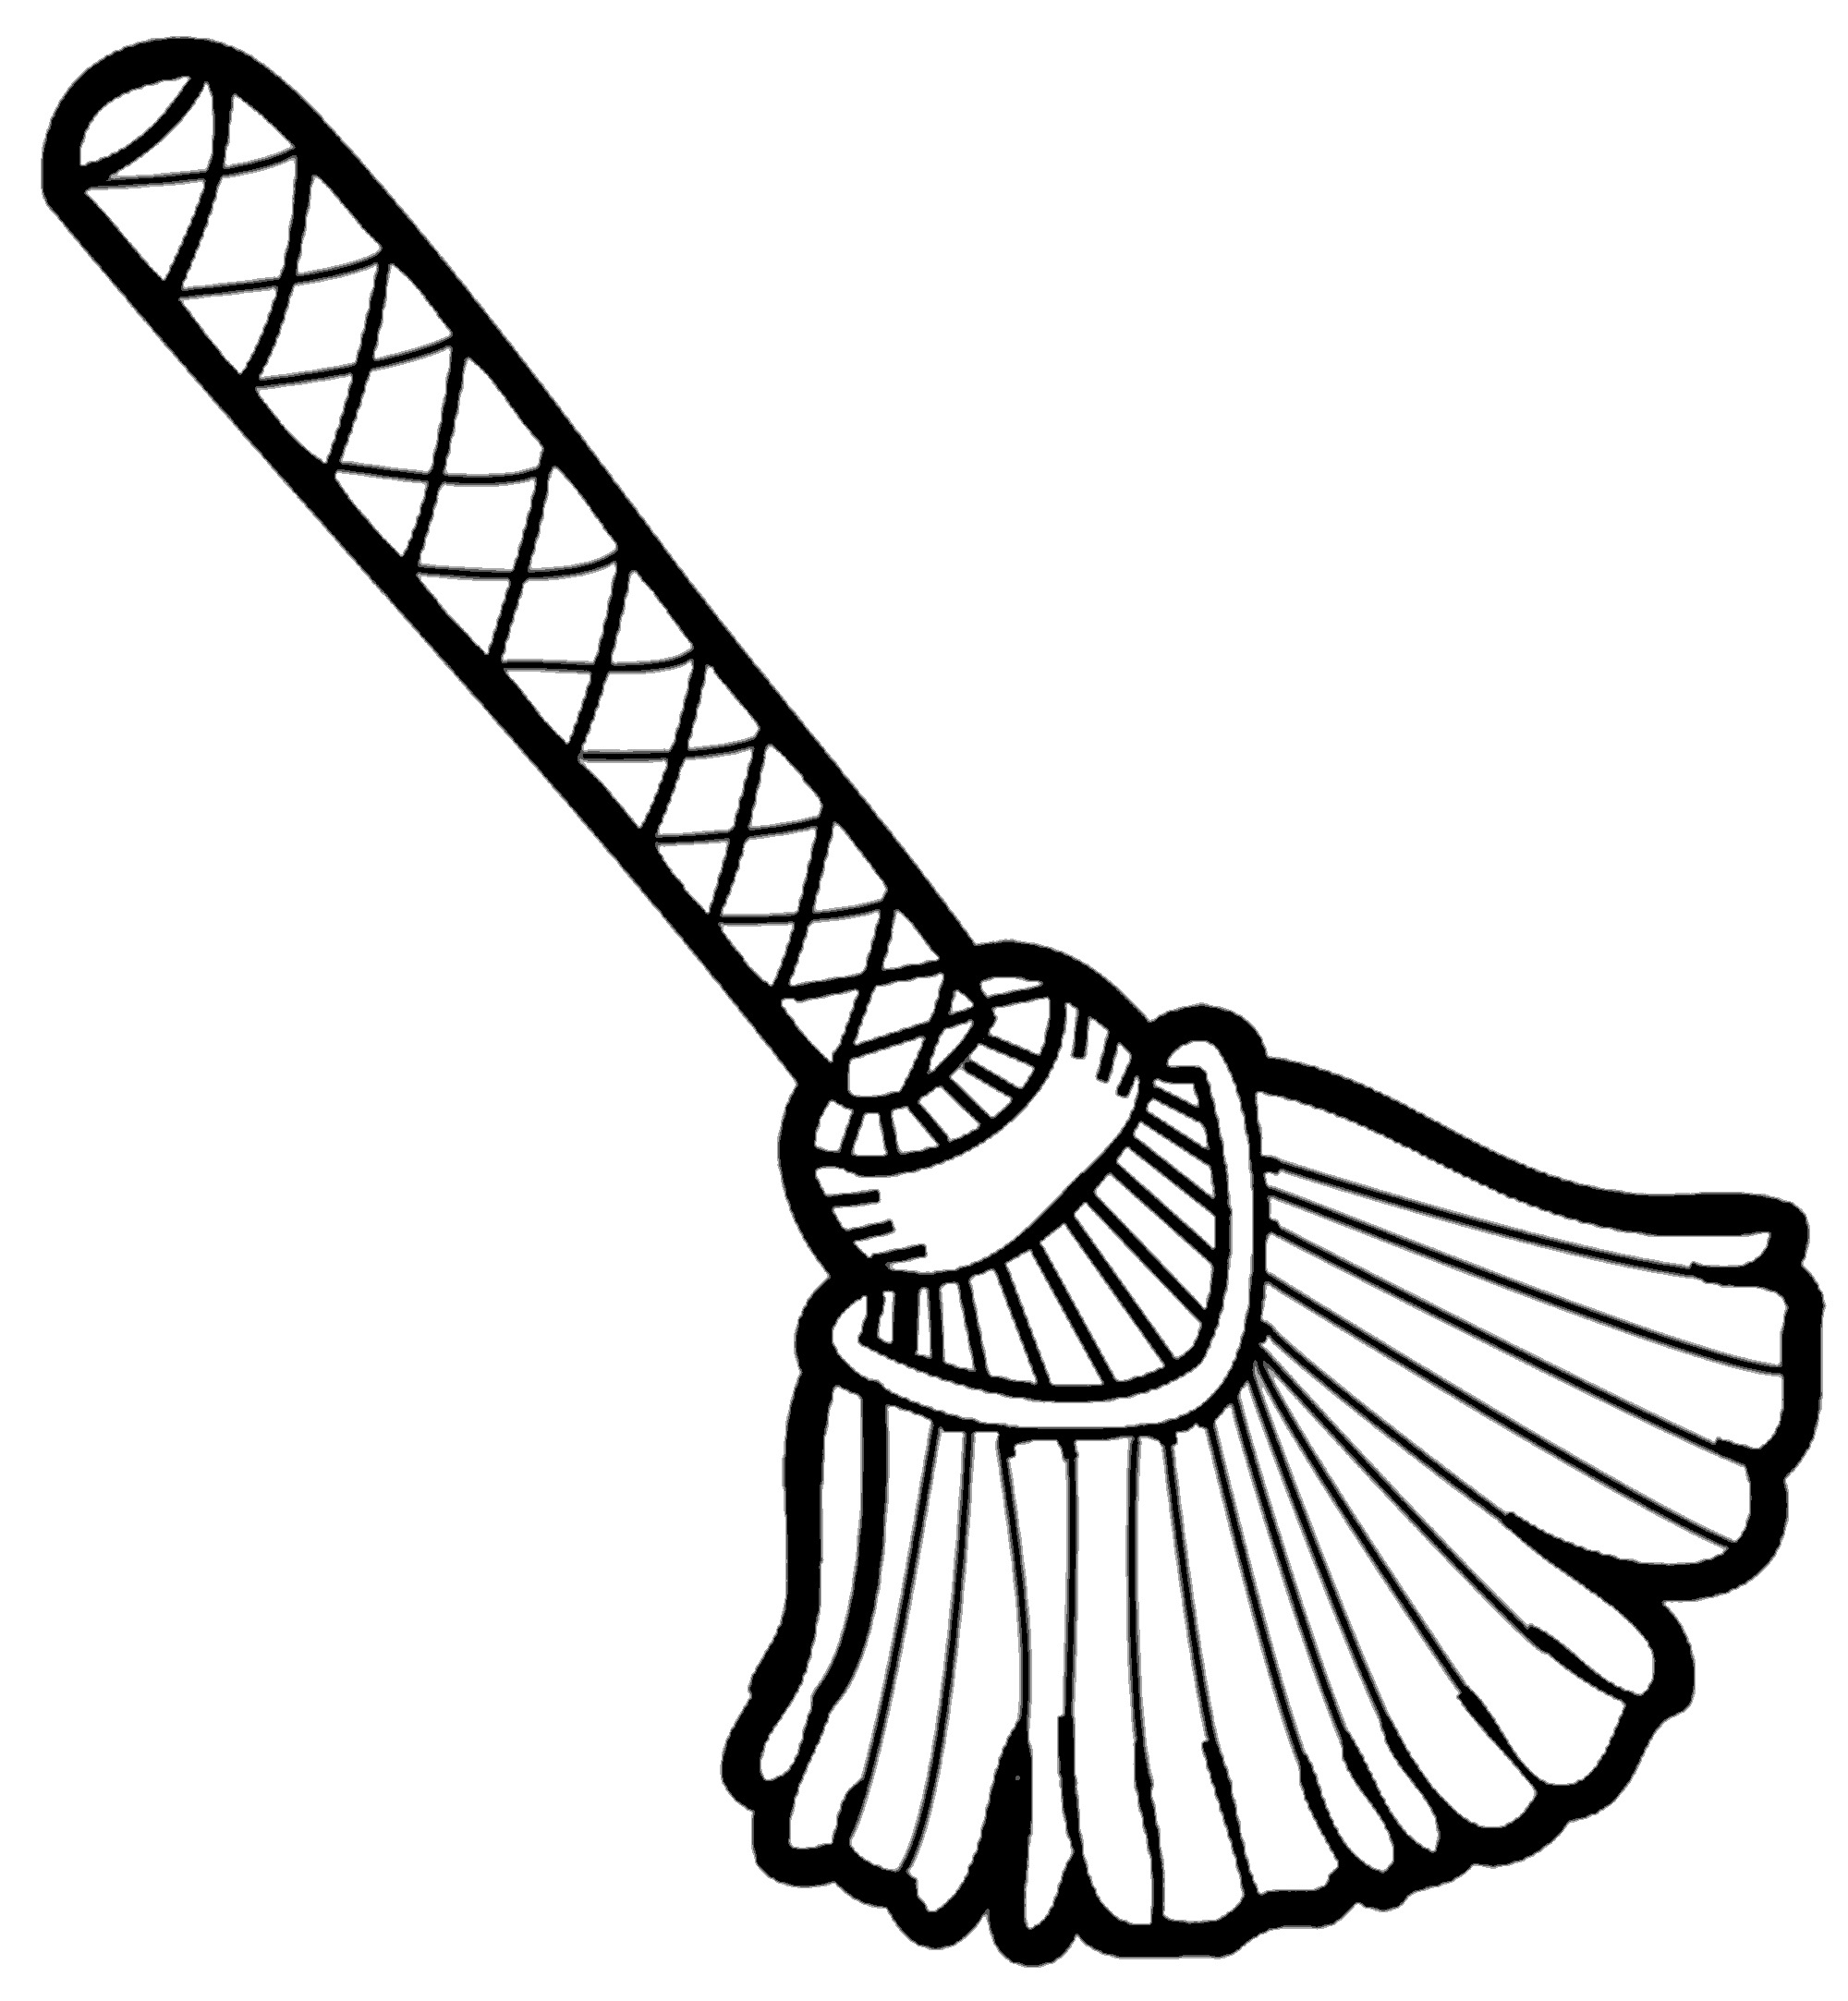 Broom clipart coloring page. Black and white panda